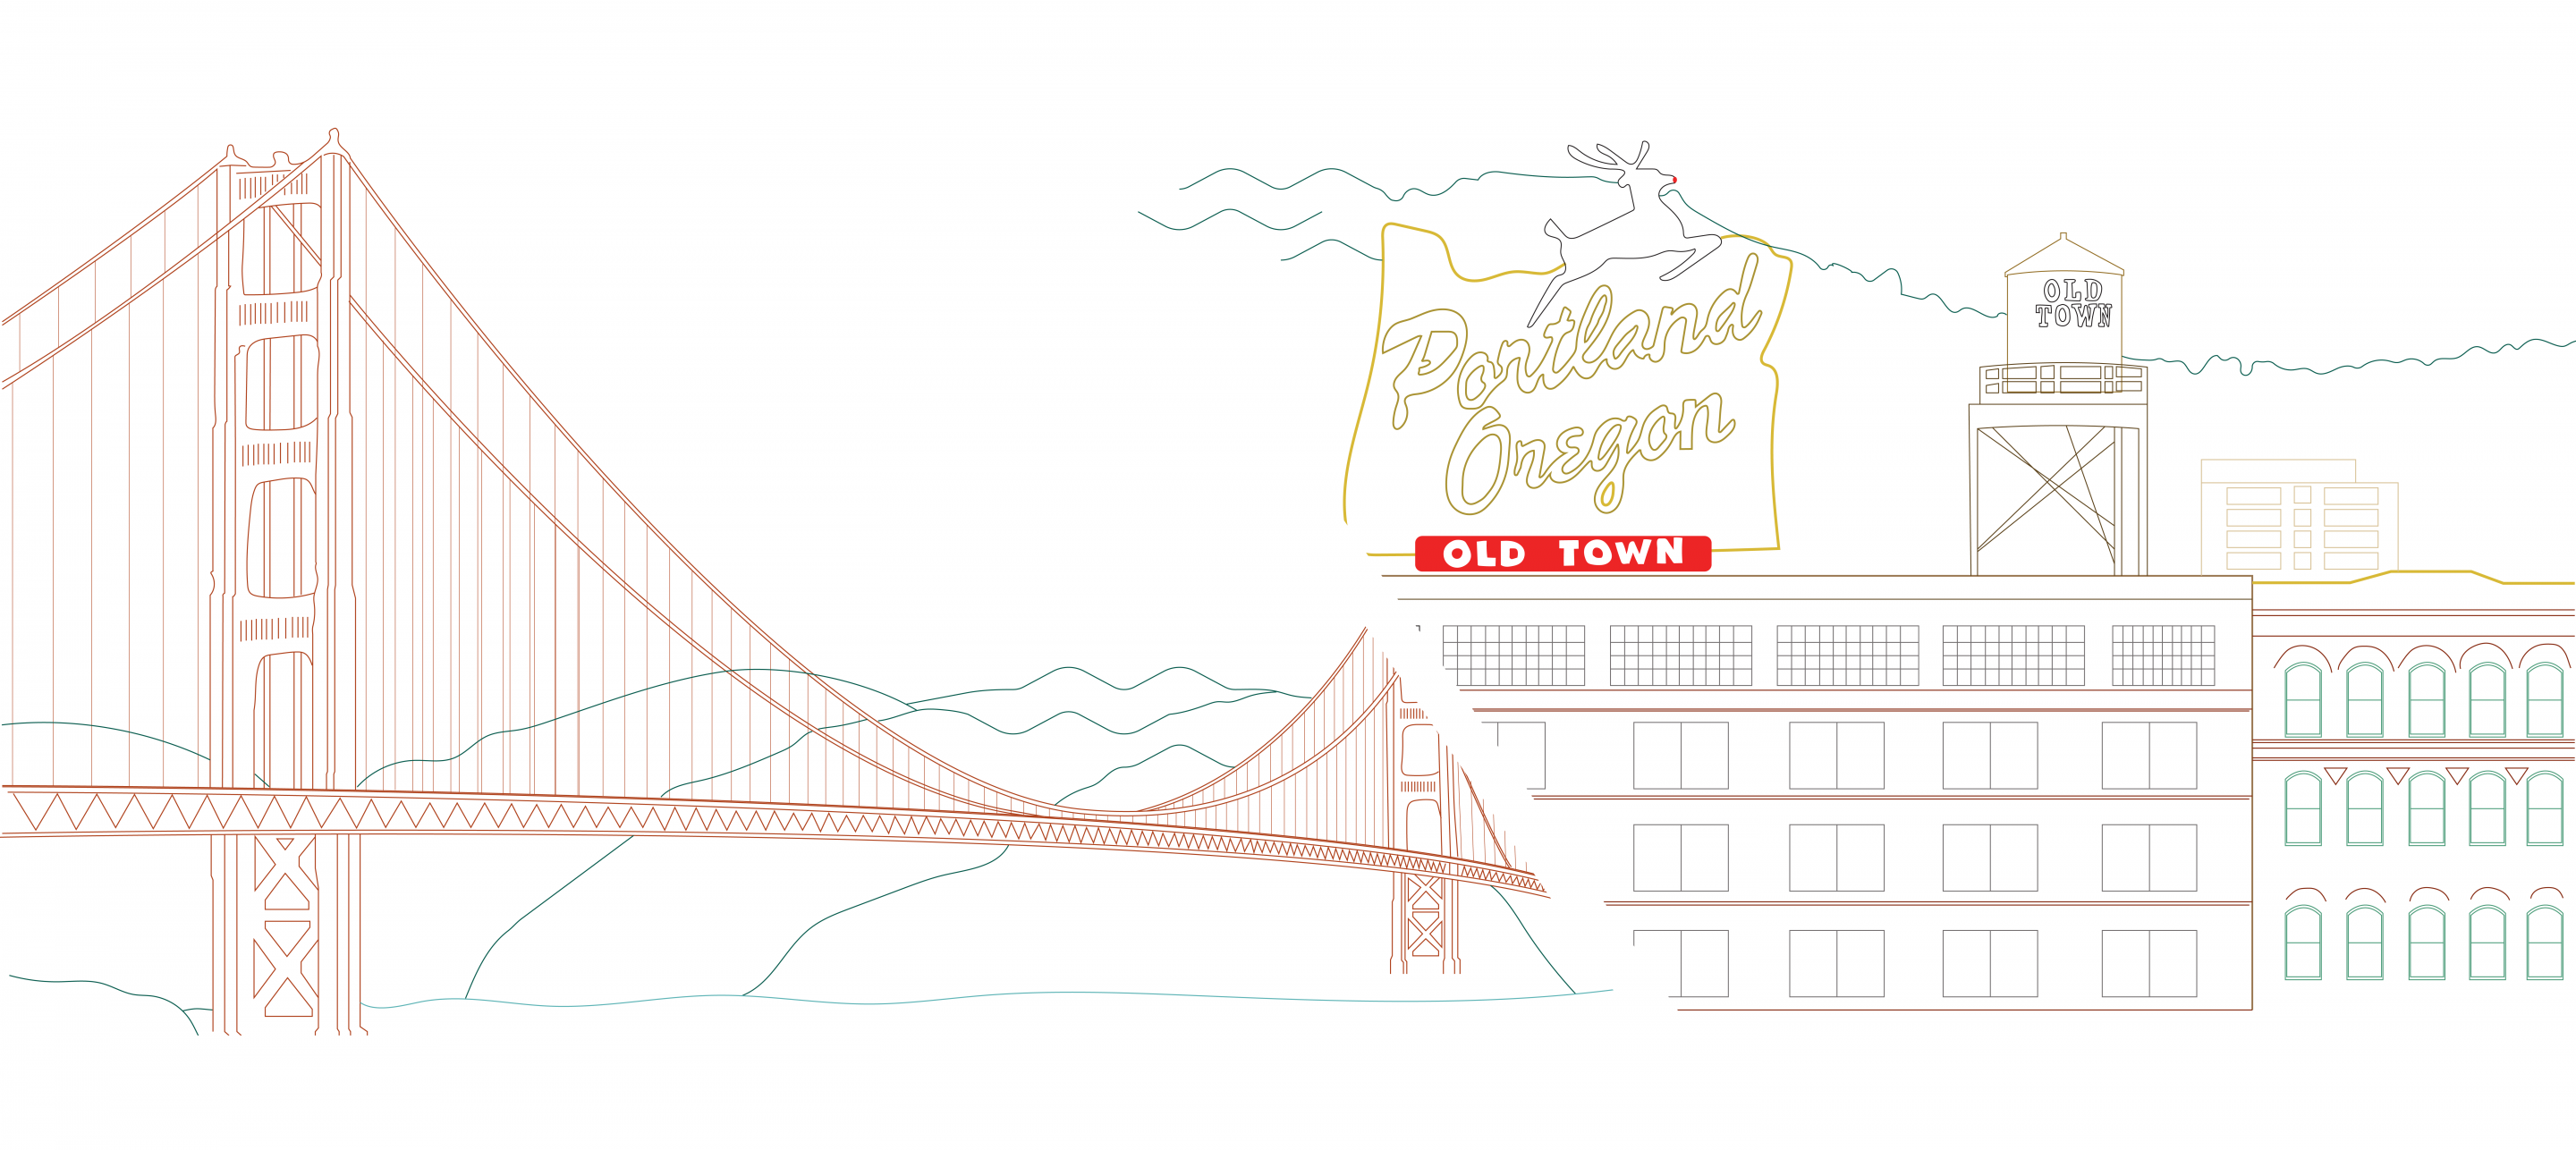 Drawing With Golden Gate Bridge On The Left And Portland On The Right